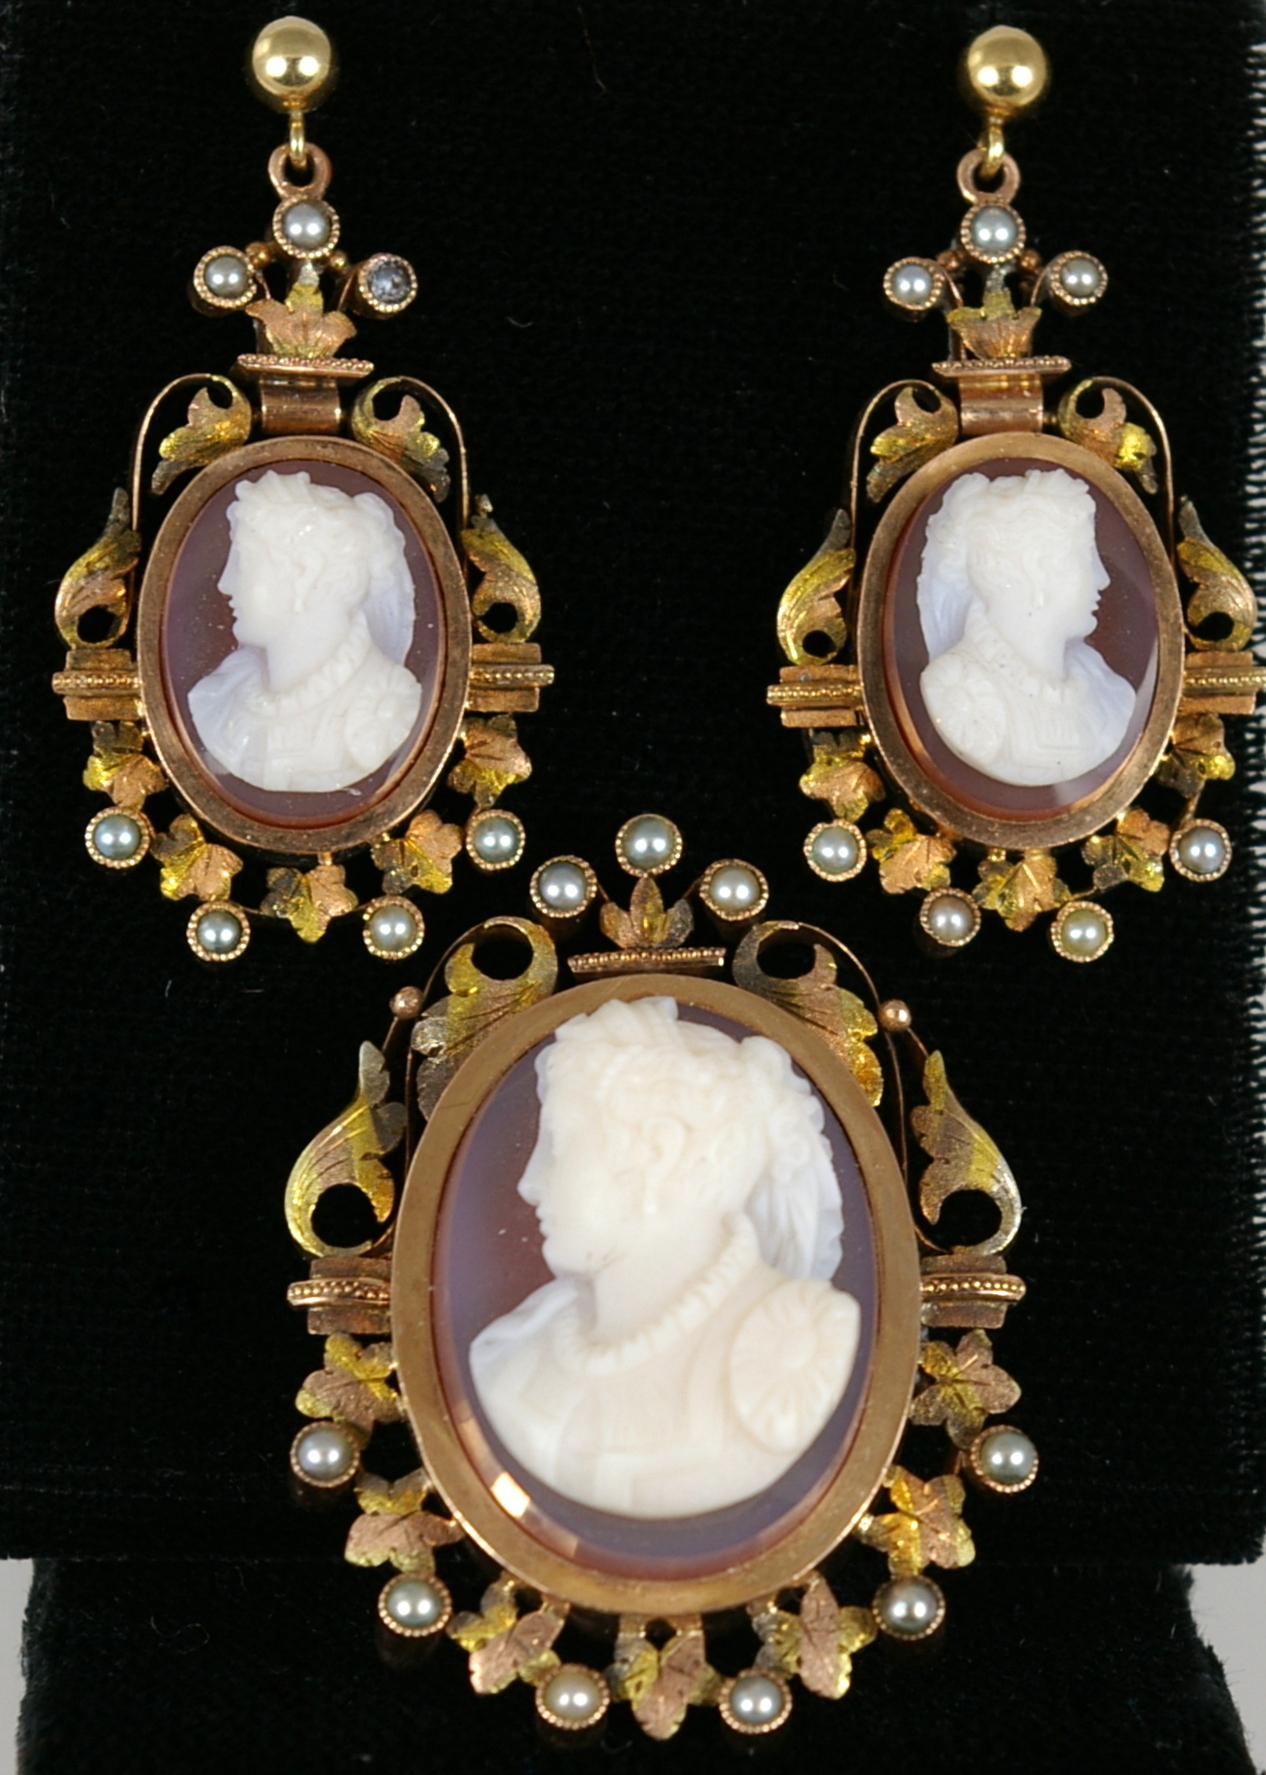 Cameo Pin and Pendant set with 14 Karat Yellow Gold and Pearl mountings